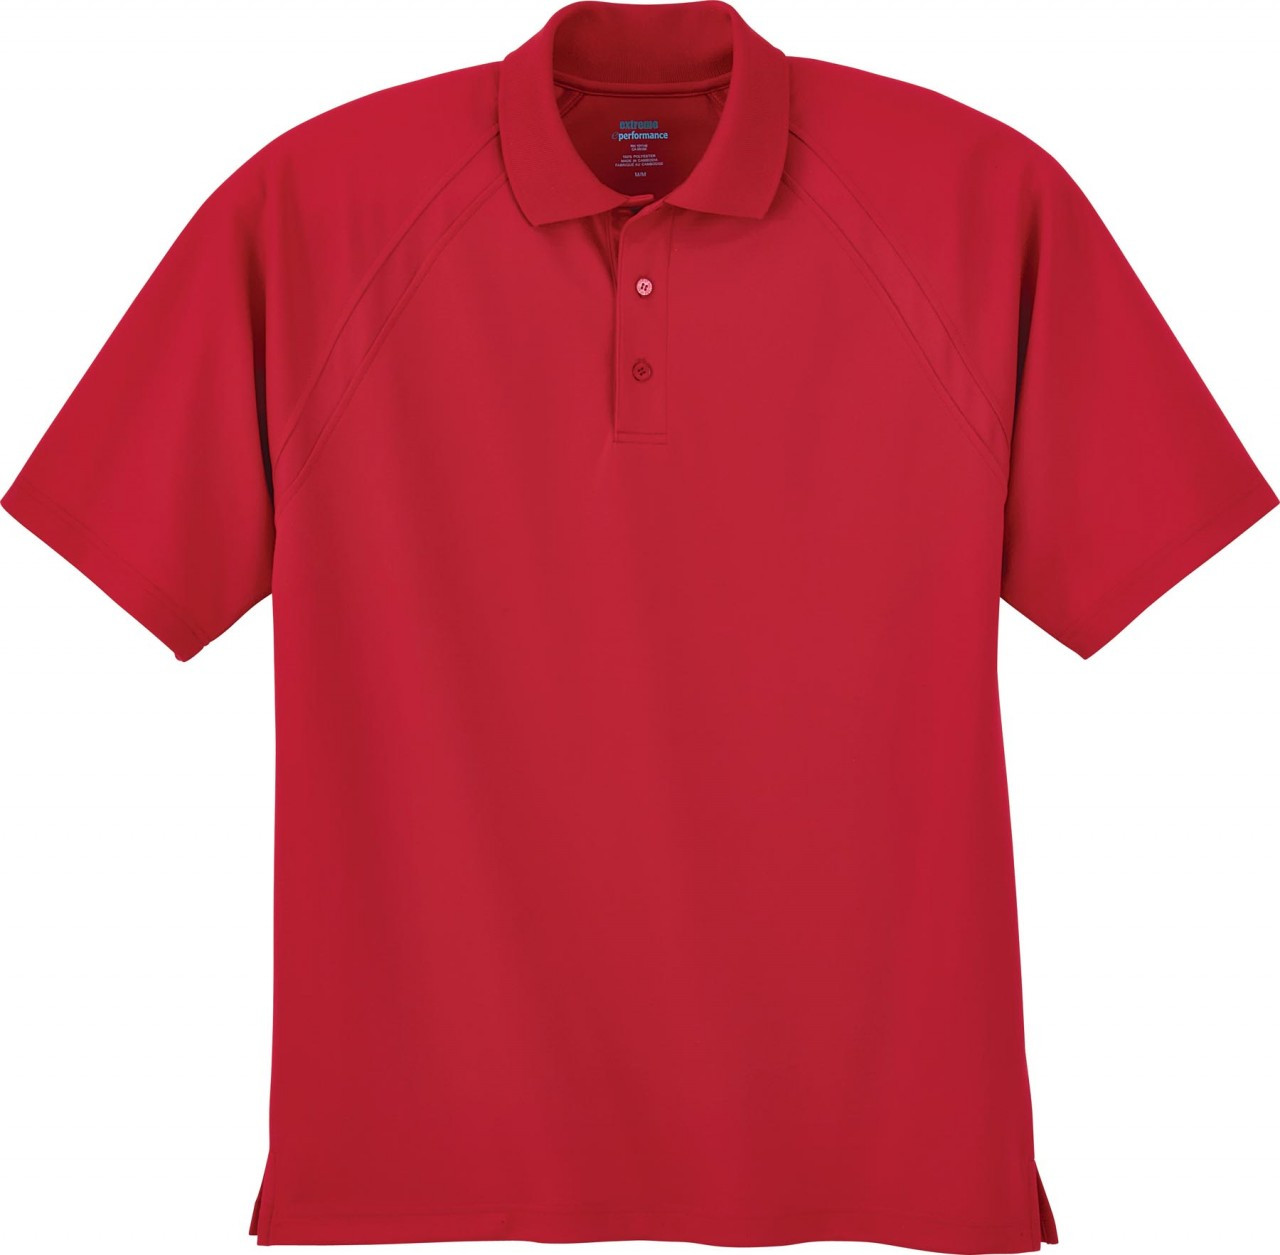 Classic Red - 85093 Extreme Men's Eperformance™ Ottoman Textured Polo Shirt | BlankClothing.ca